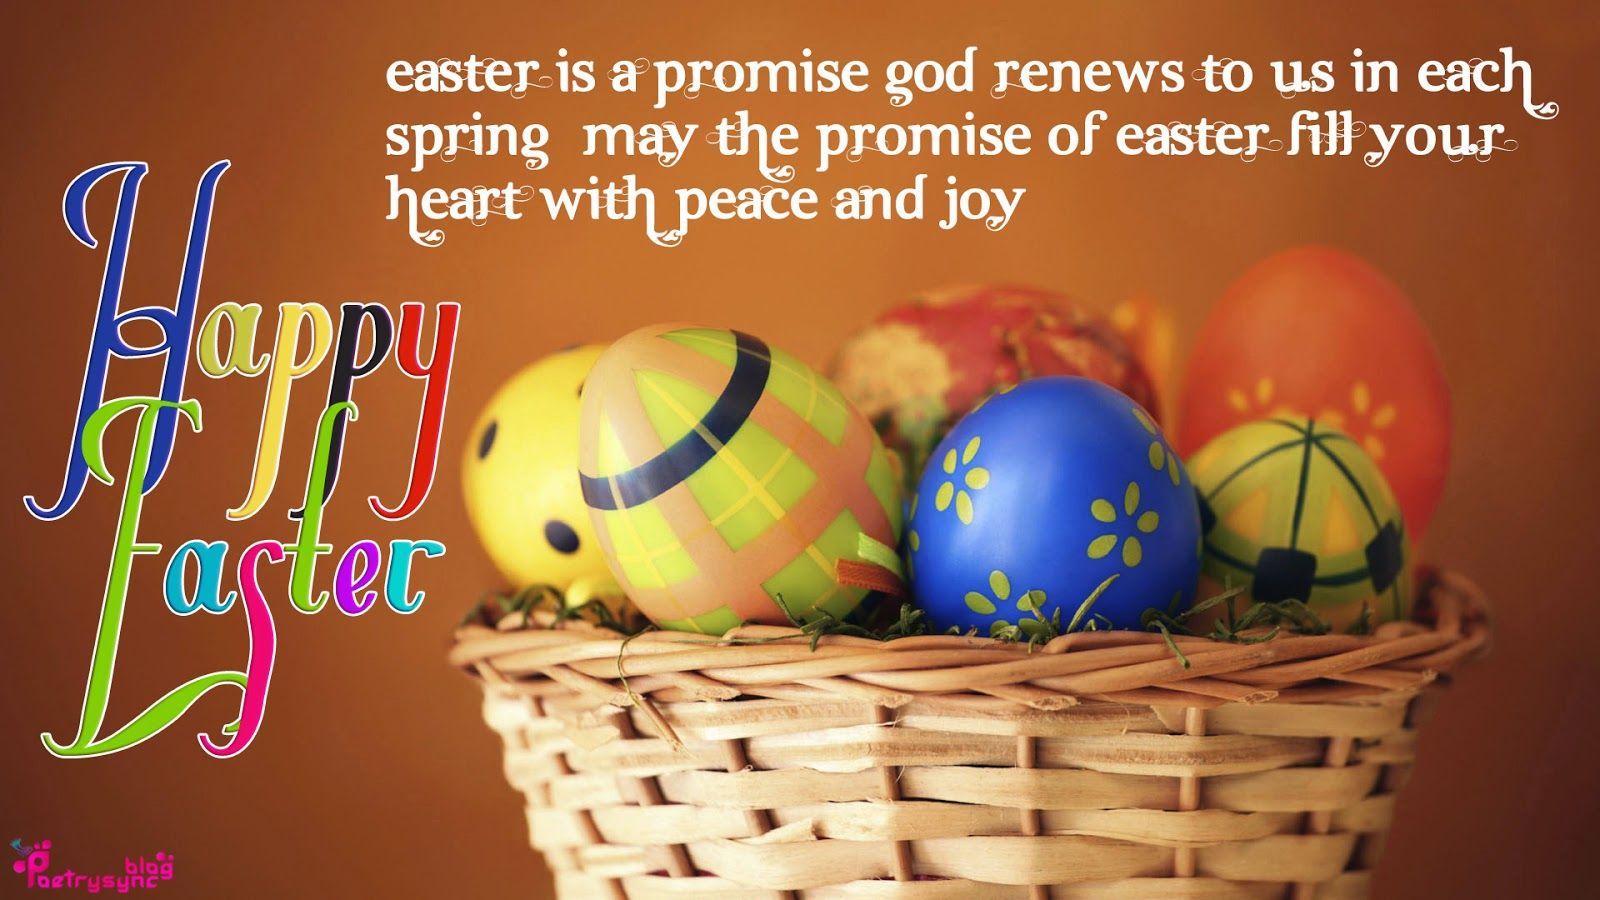 Happy Easter Holiday Wishes With Bunny Greetings Wallpaper Easter